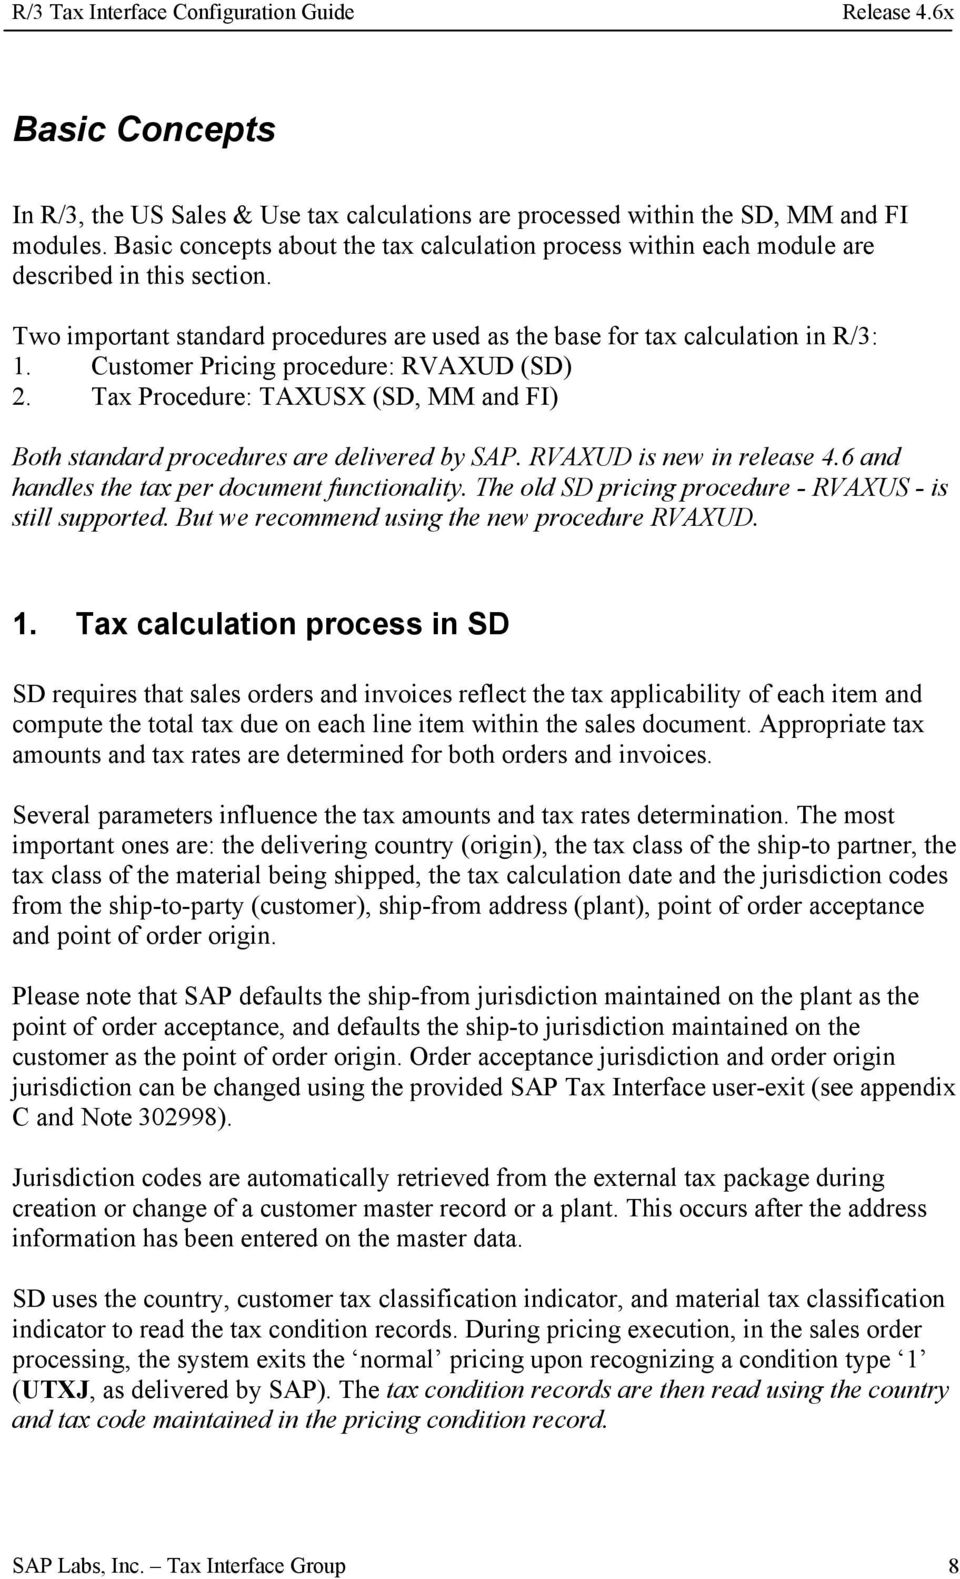 R/3 Tax Interface Configuration Guide Release 4 6x - PDF